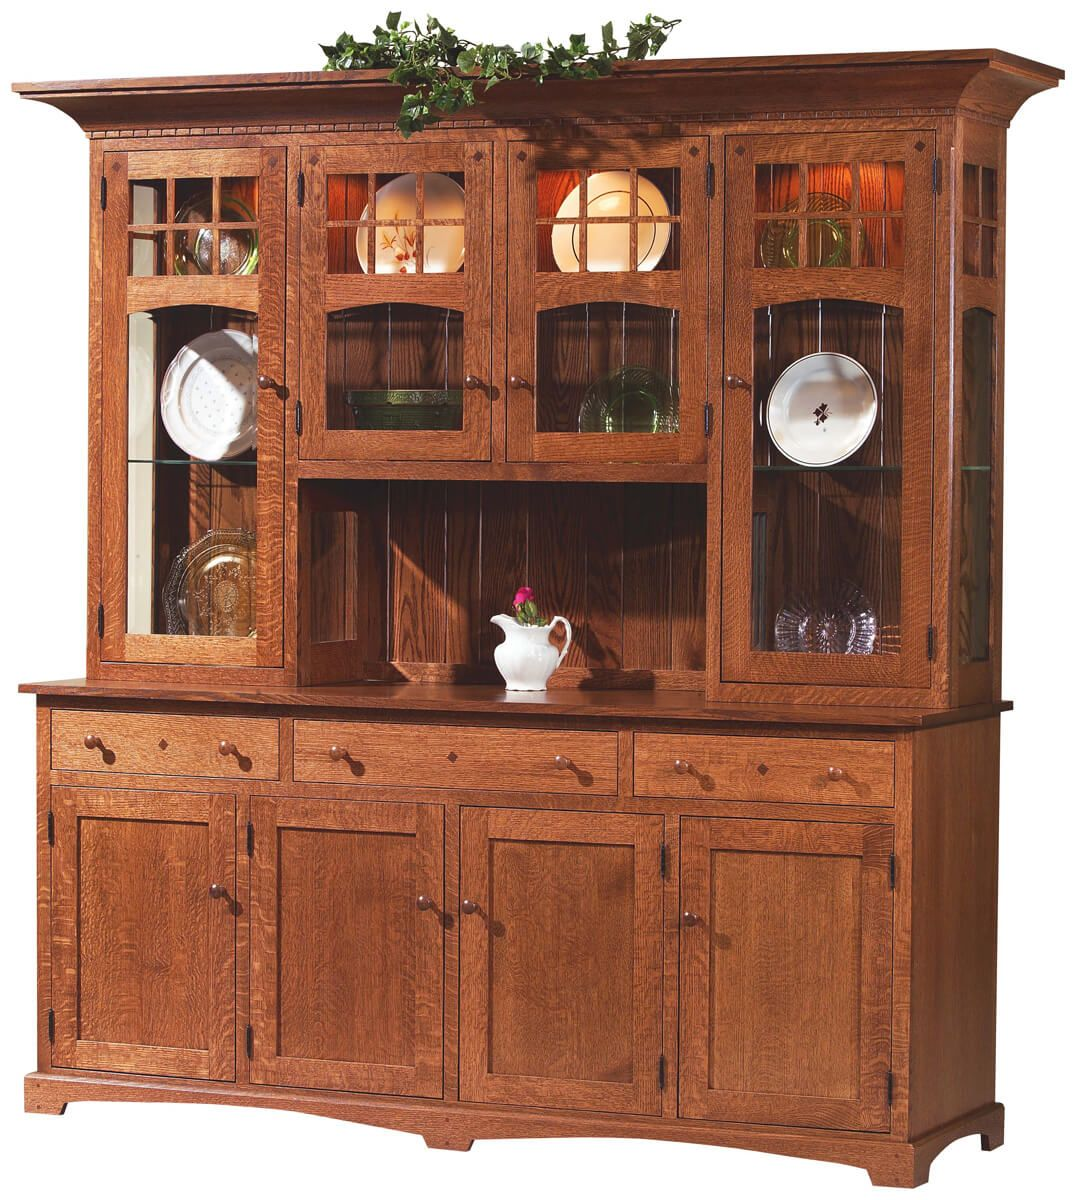 Oak Dining Room Sets With Hutch: Countryside Amish Furniture